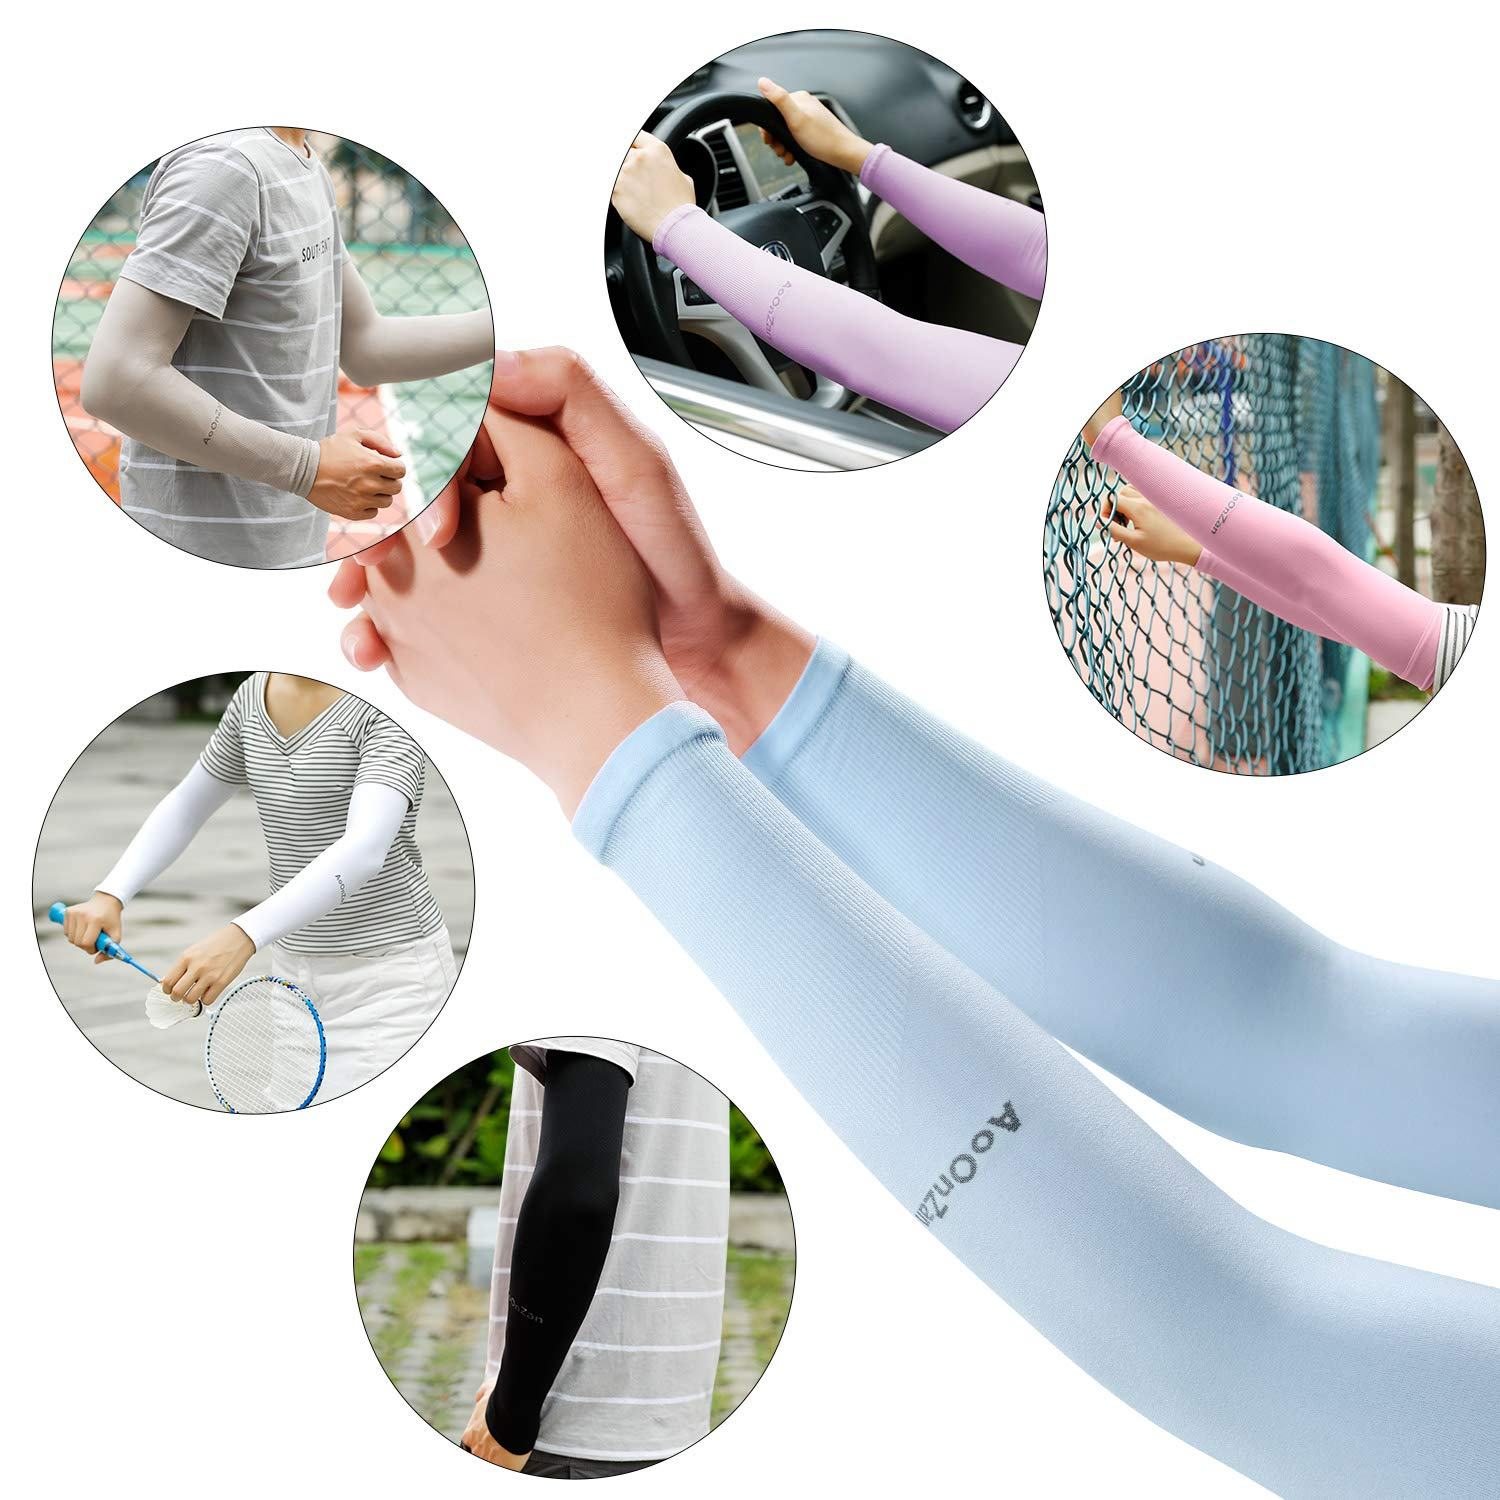 AoOnZan 6 pairs Cooling Arm Sleeves Cover UV Sun Protection Armband Basketball Golf Athletic Sport Running Compression Sleeve by AoOnZan (Image #7)